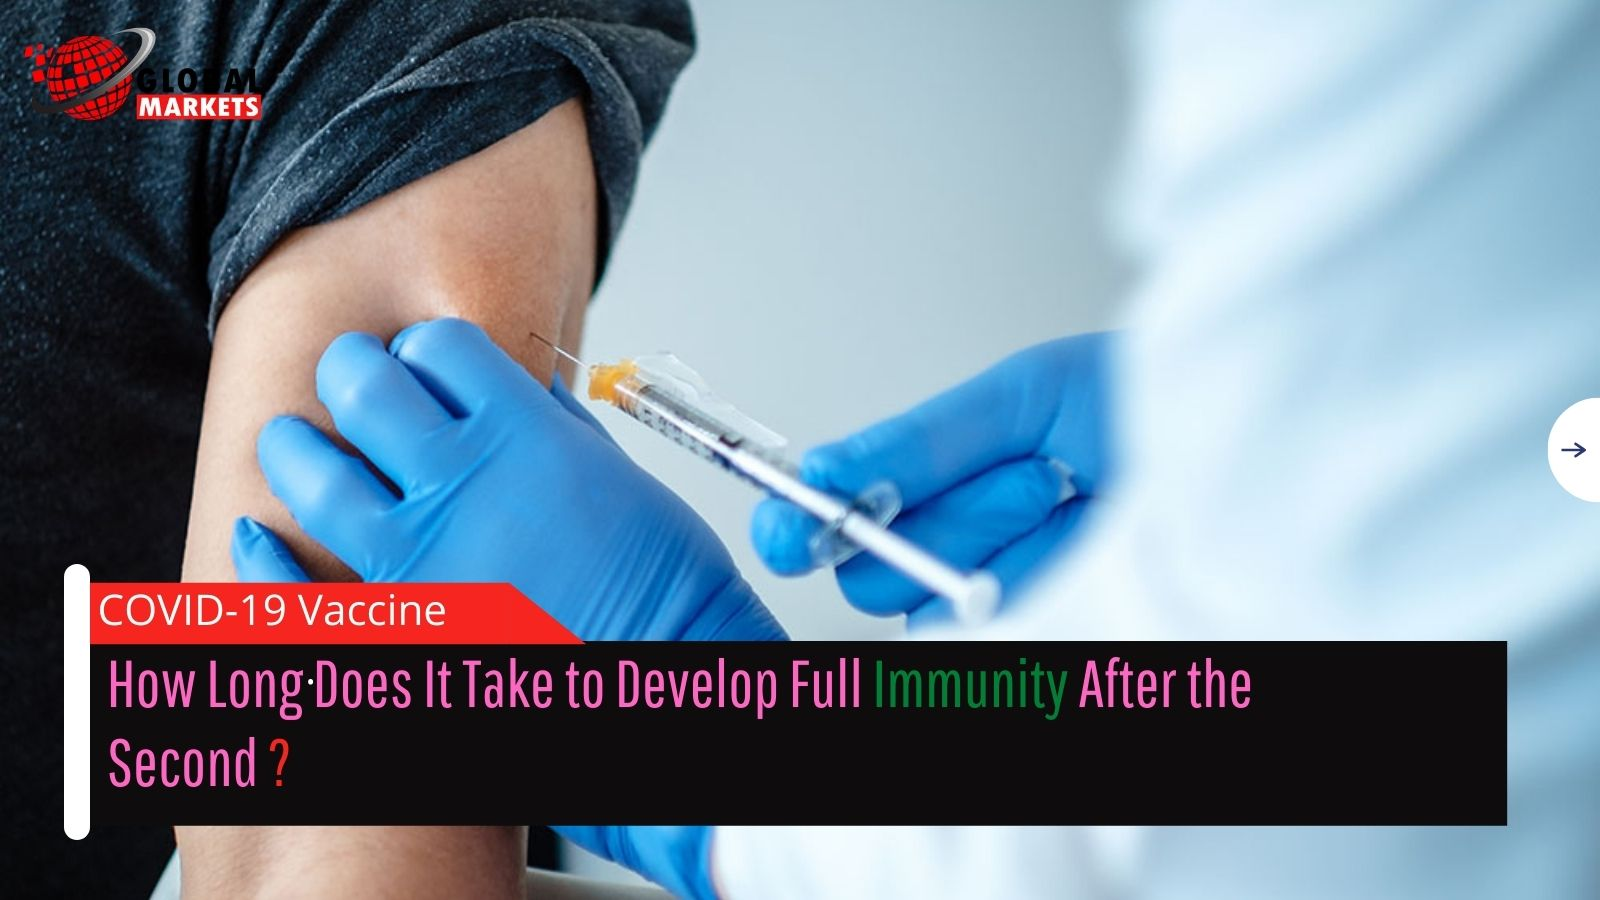 How long does it take to develop complete immunity after the second COVID-19 vaccine?